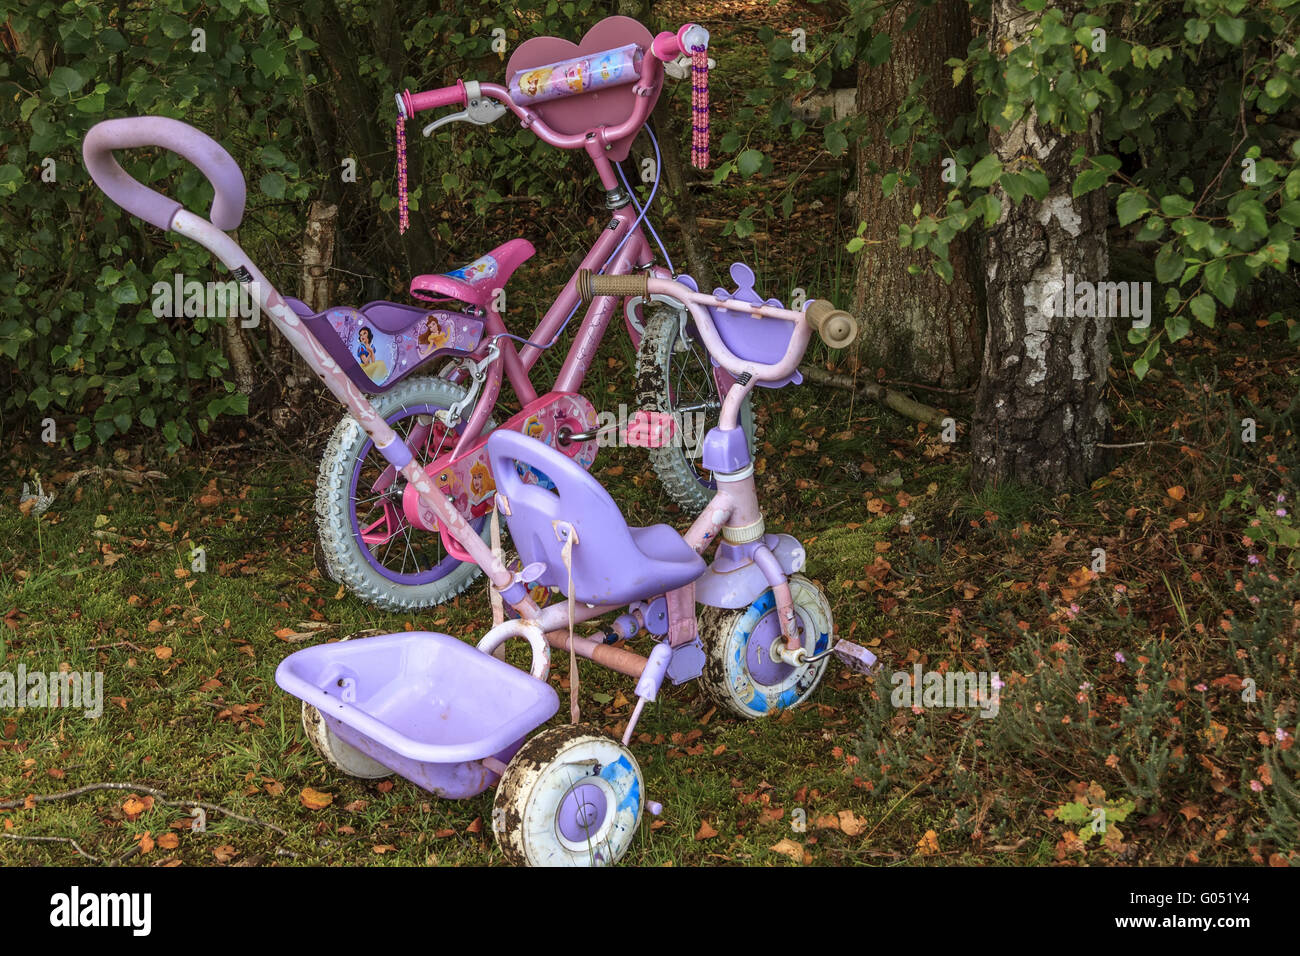 Childrens Toys Abandoned In The Woods Berkshire UK - Stock Image